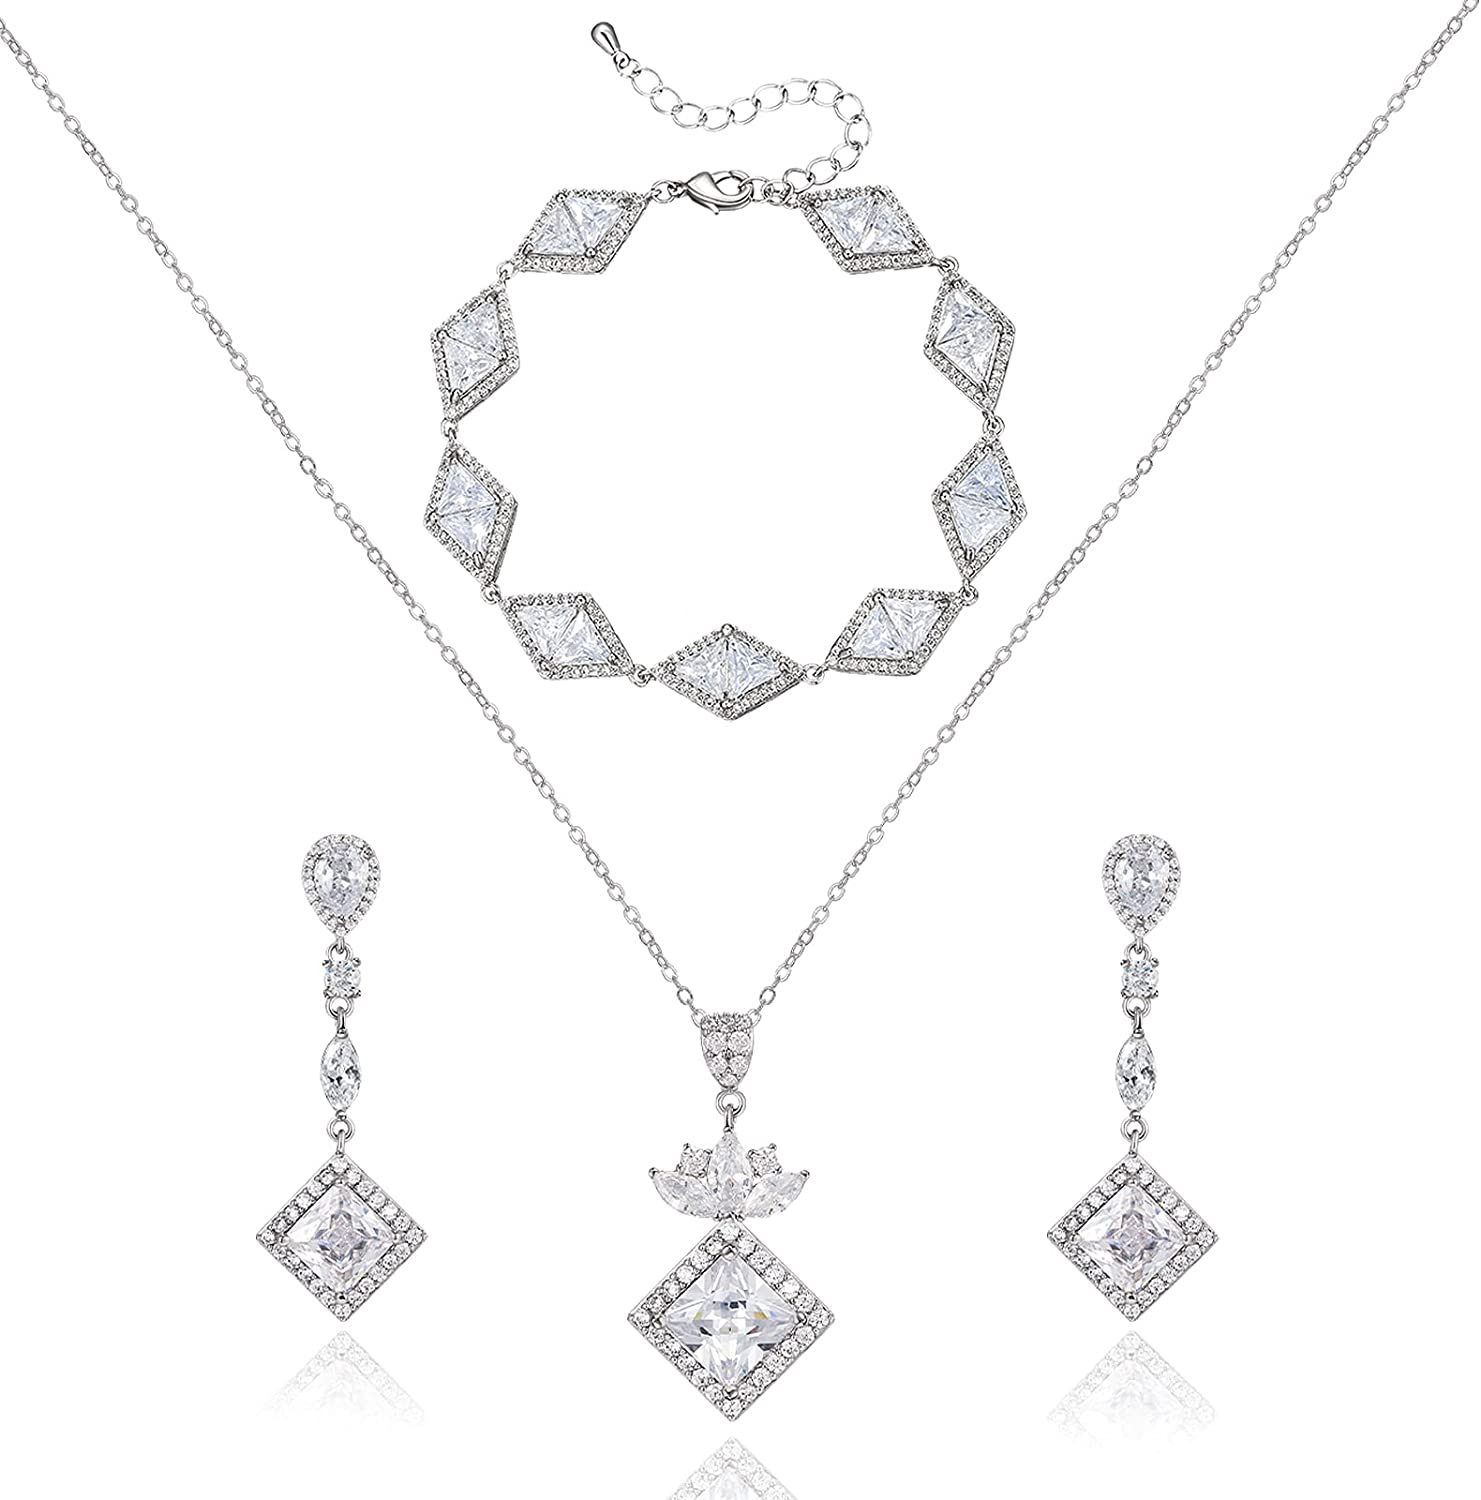 SWEETV Wedding Jewelry Sets for Brides, Teardrop Cubic Zirconia Necklace Dangle Earrings Bracelet Set for Women, Jewelry Set Gift for Wedding Party Prom Anniversary